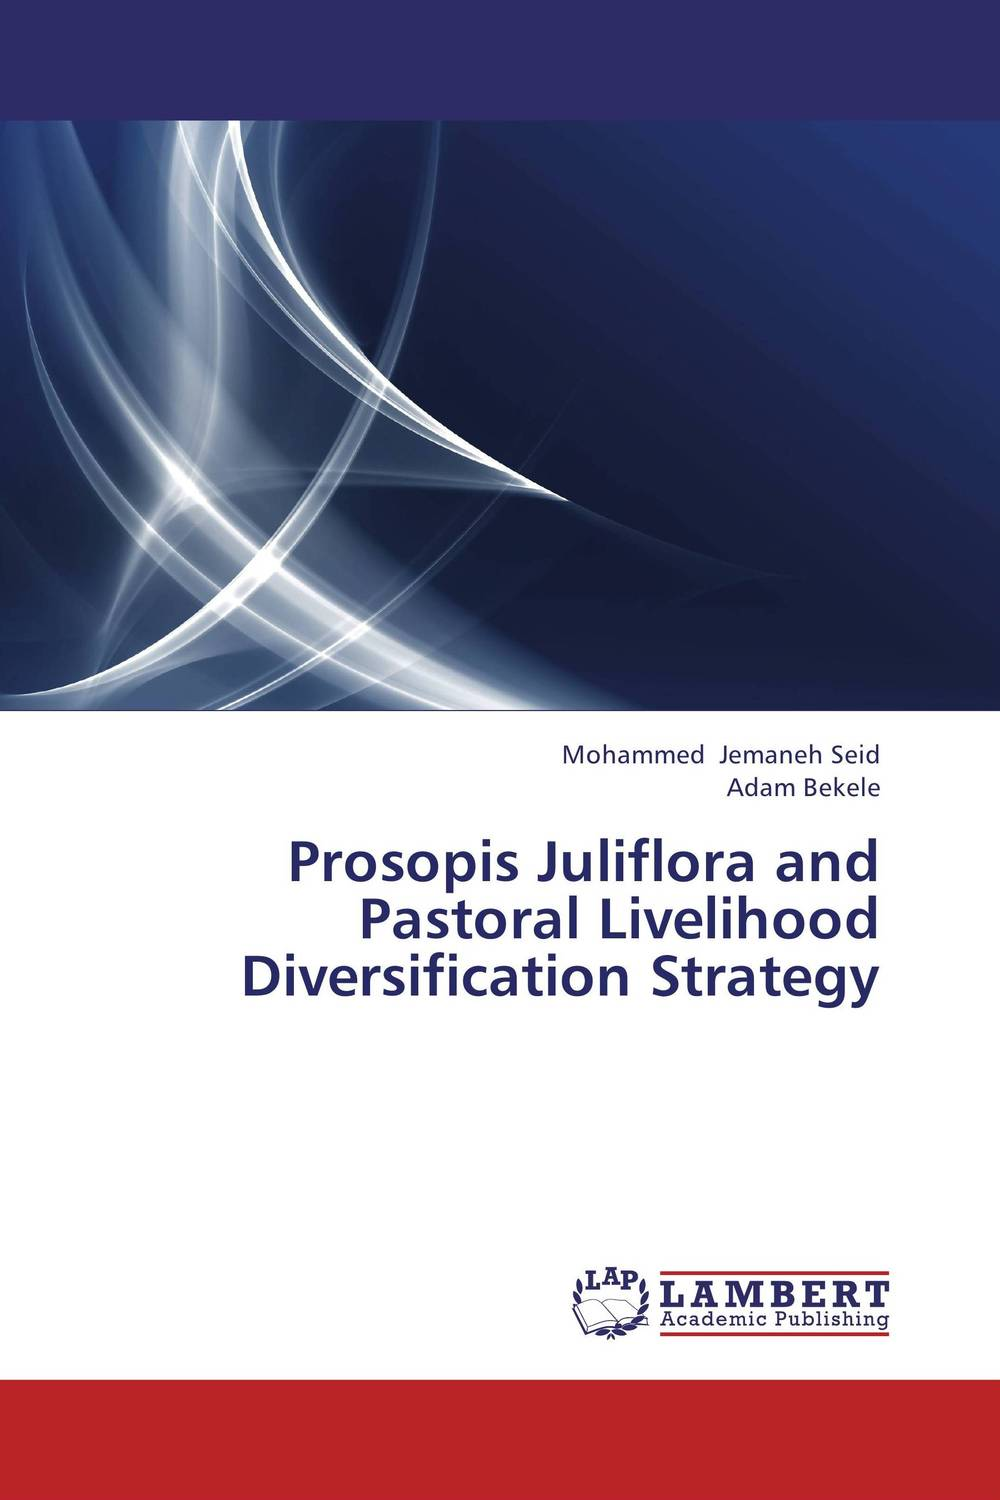 Prosopis Juliflora and Pastoral Livelihood Diversification Strategy impact of livelihood diversification on food security